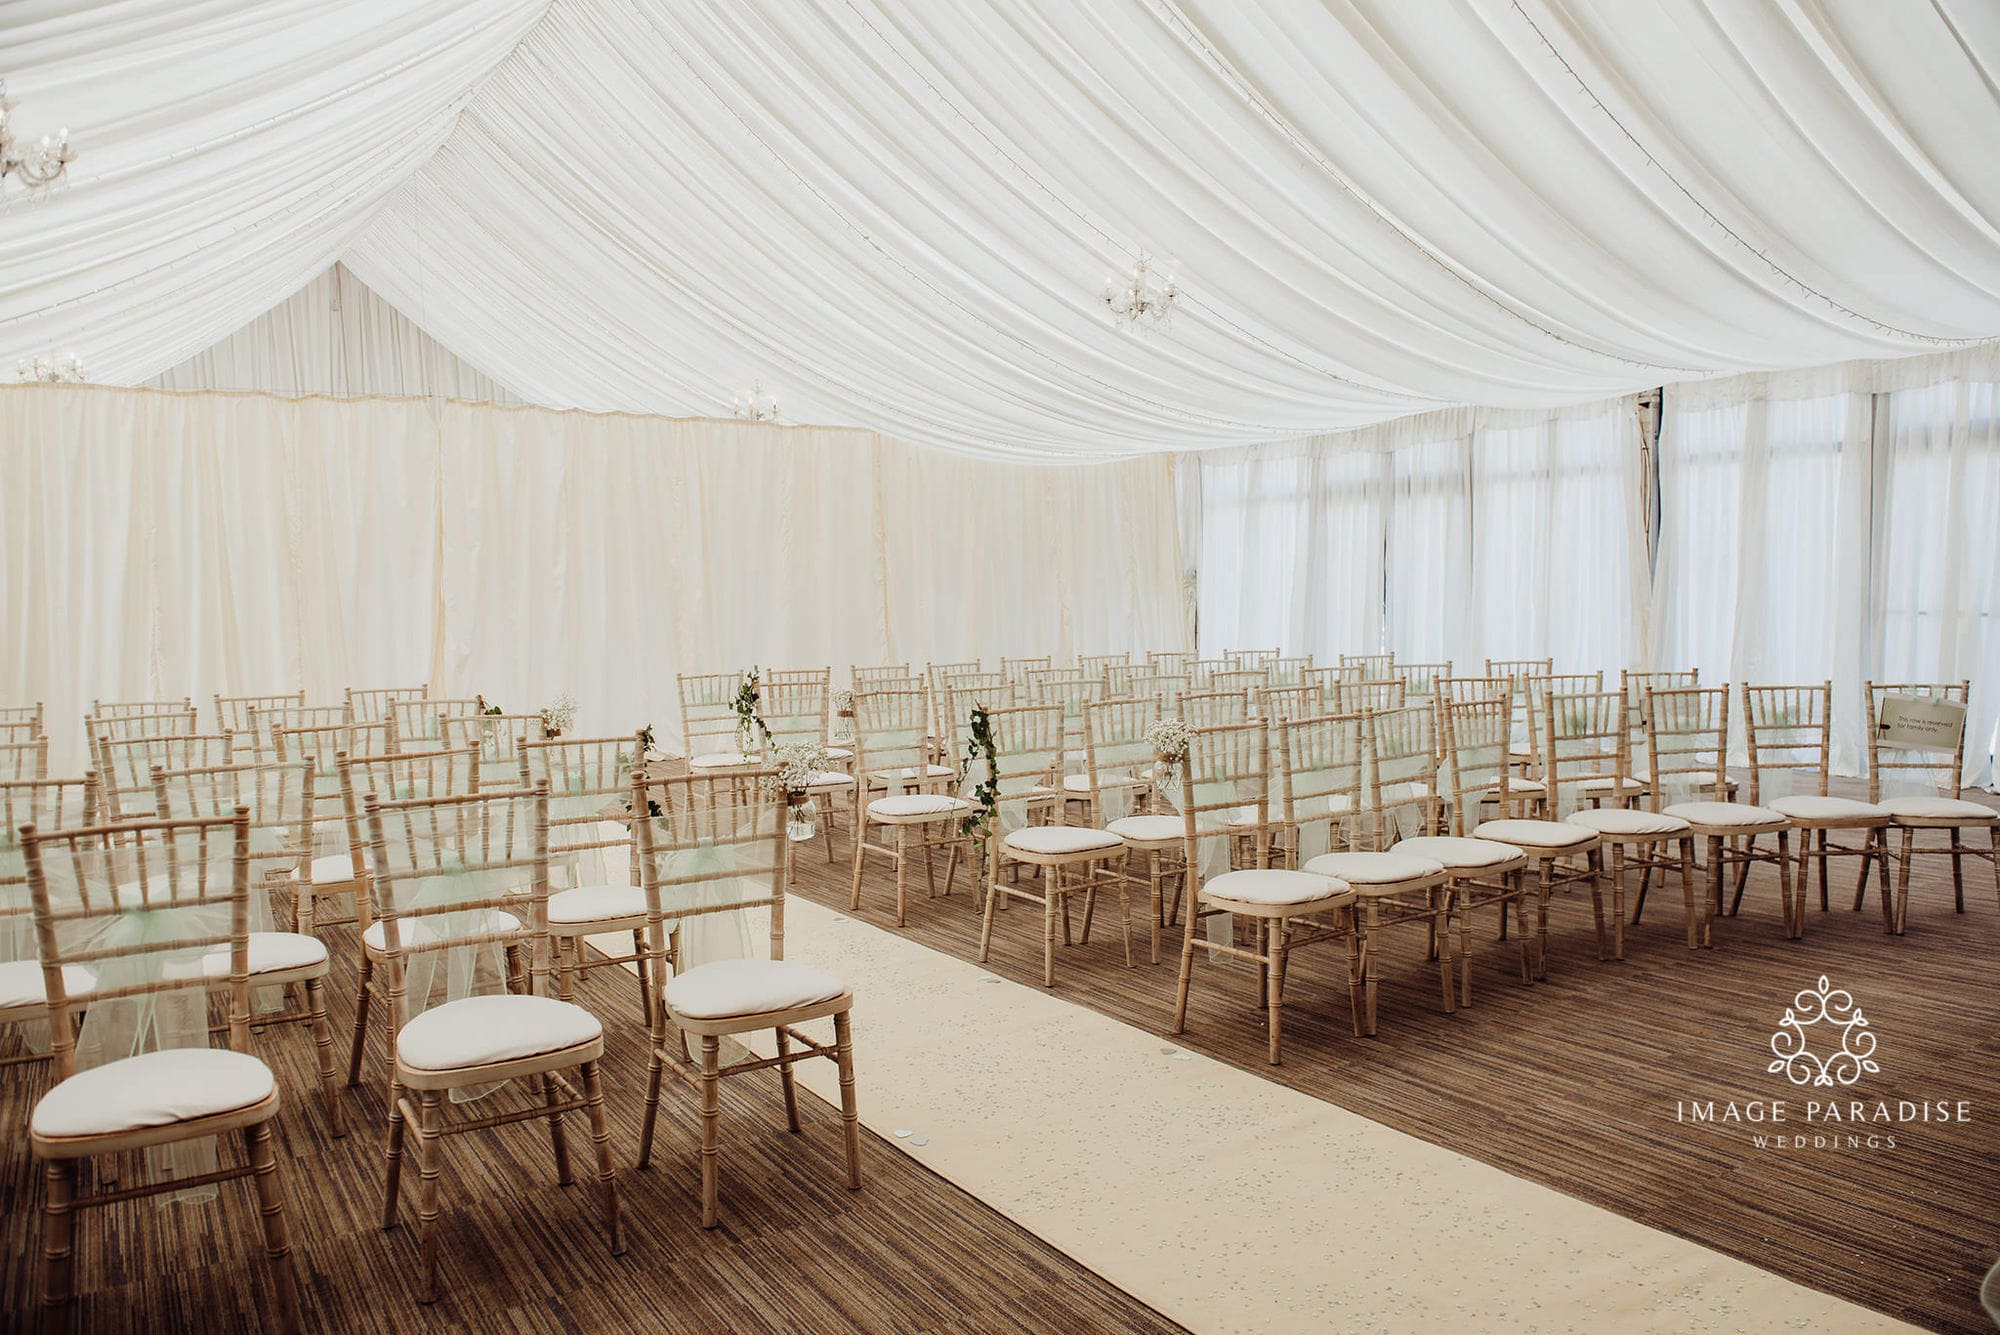 Cotswolds wedding venue chairs inside marquee for wedding ceremony